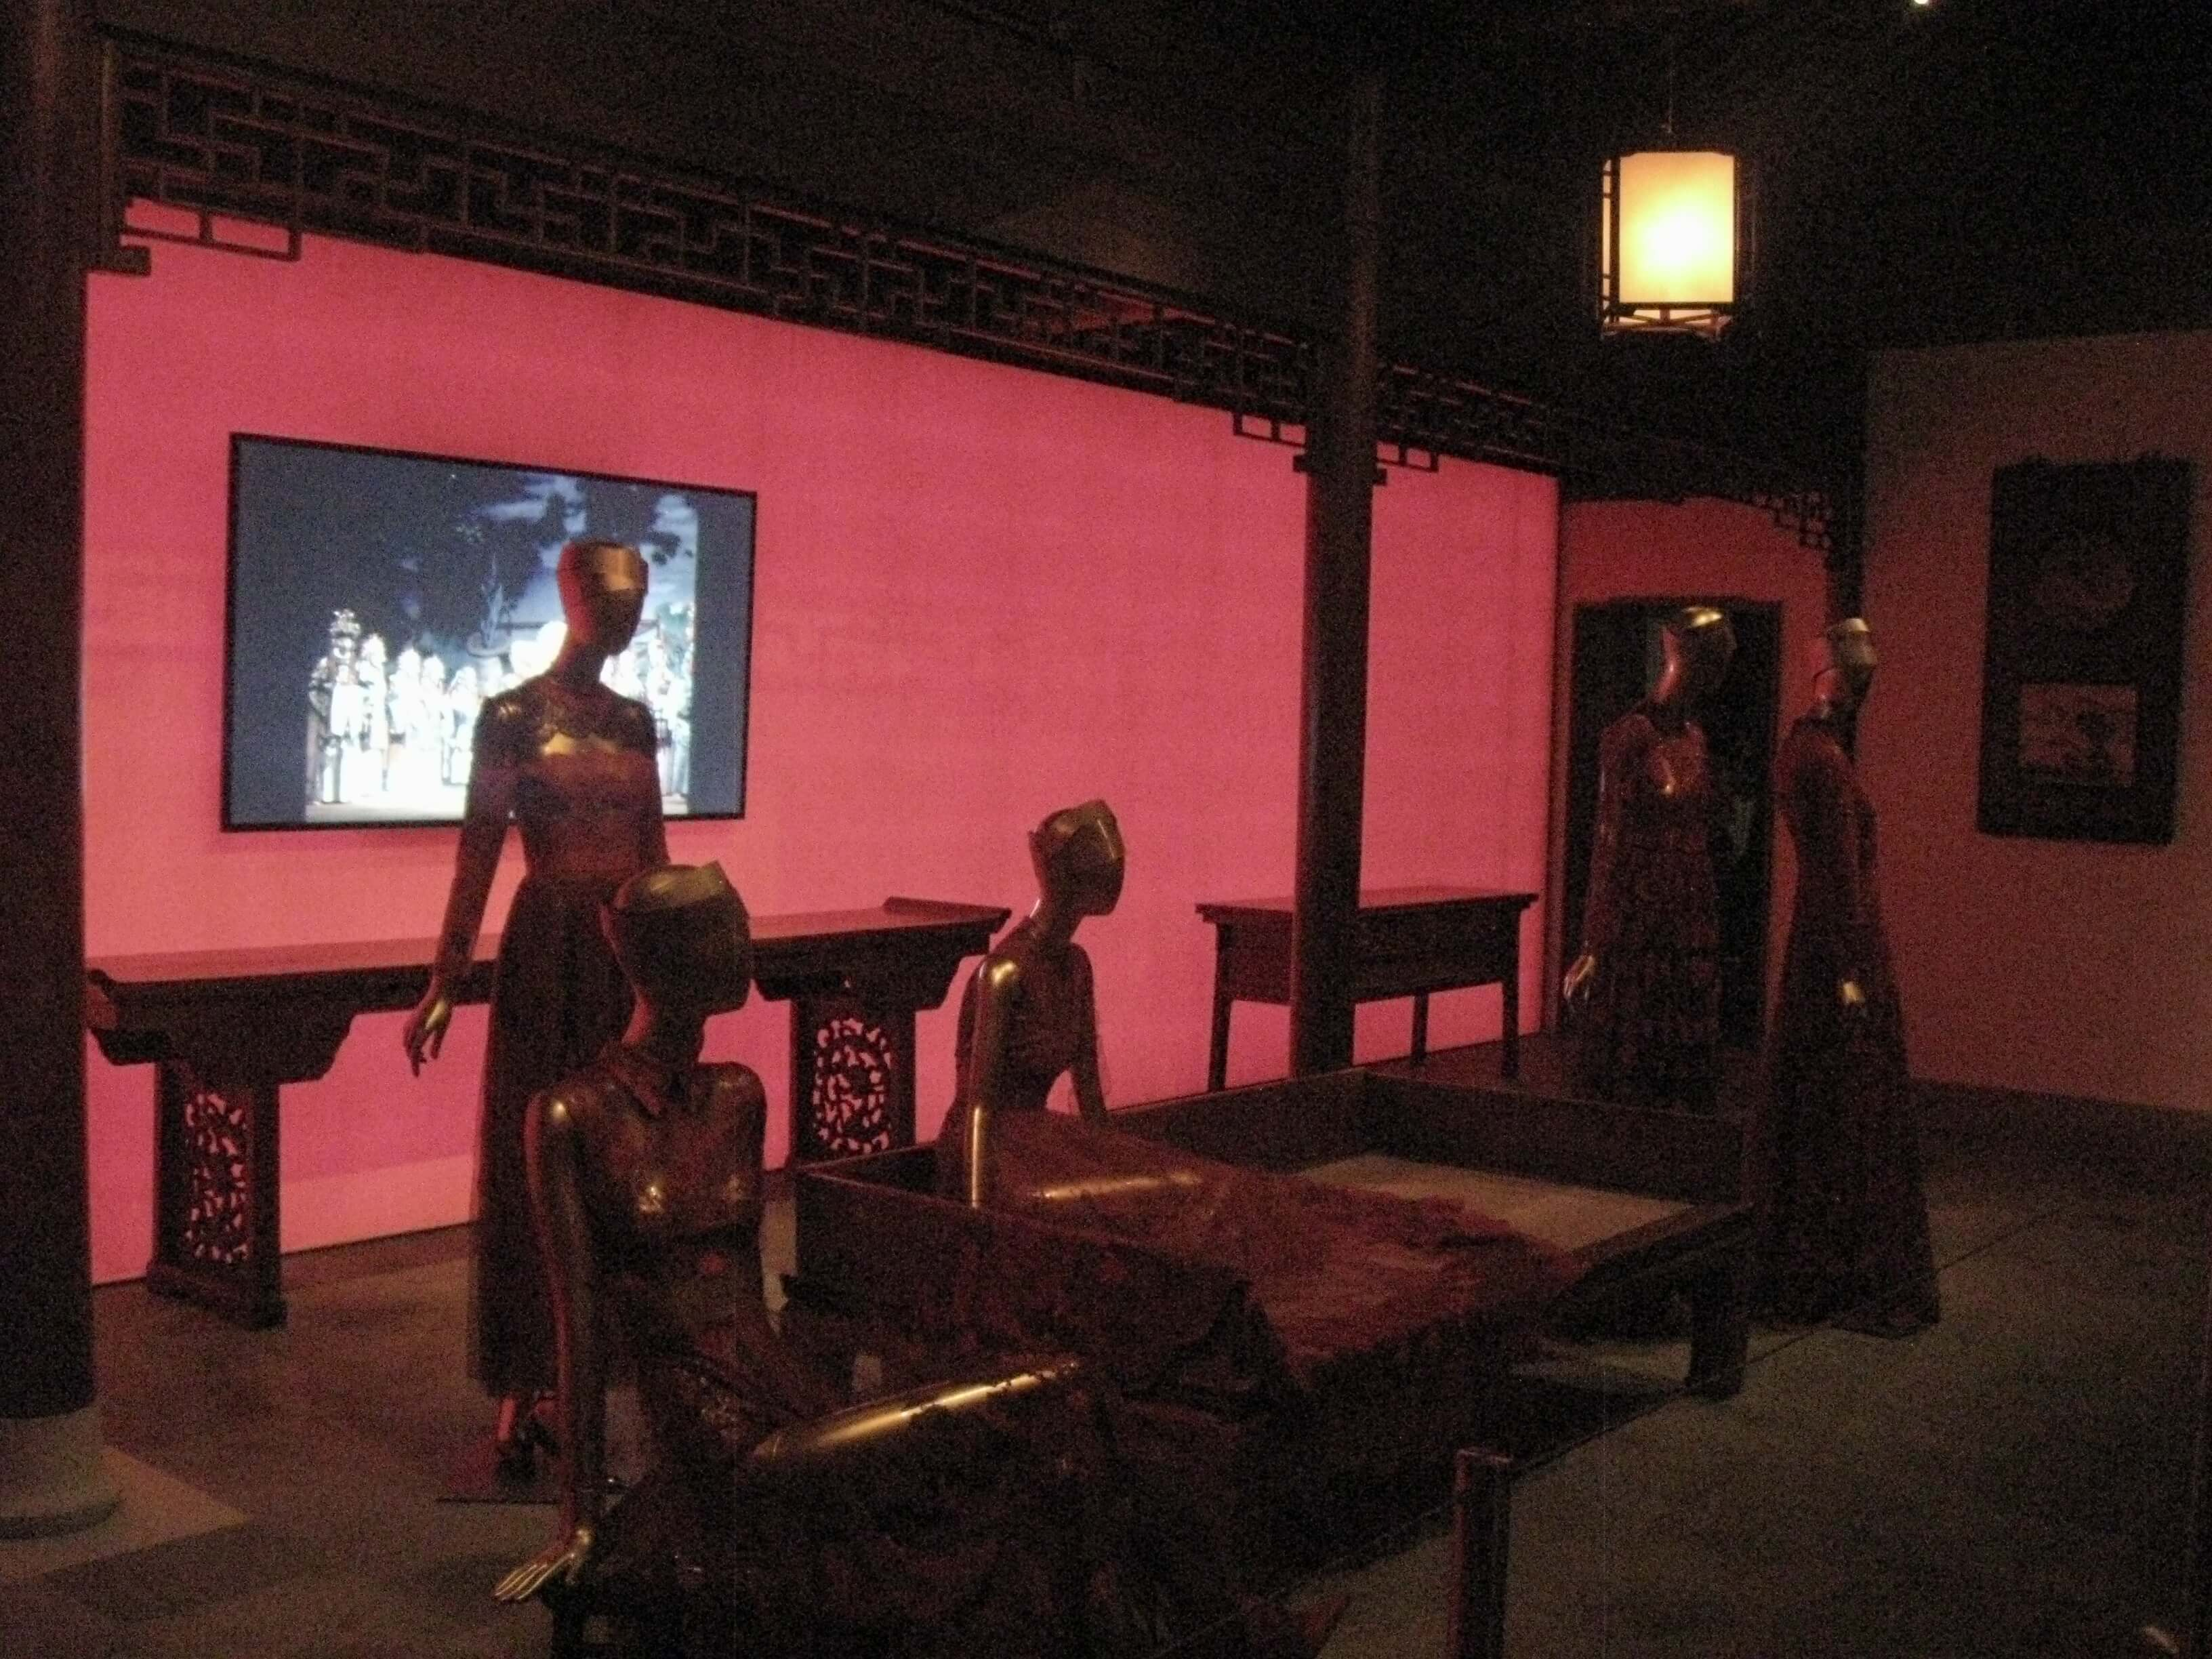 China : Through the Looking Glass, Ming